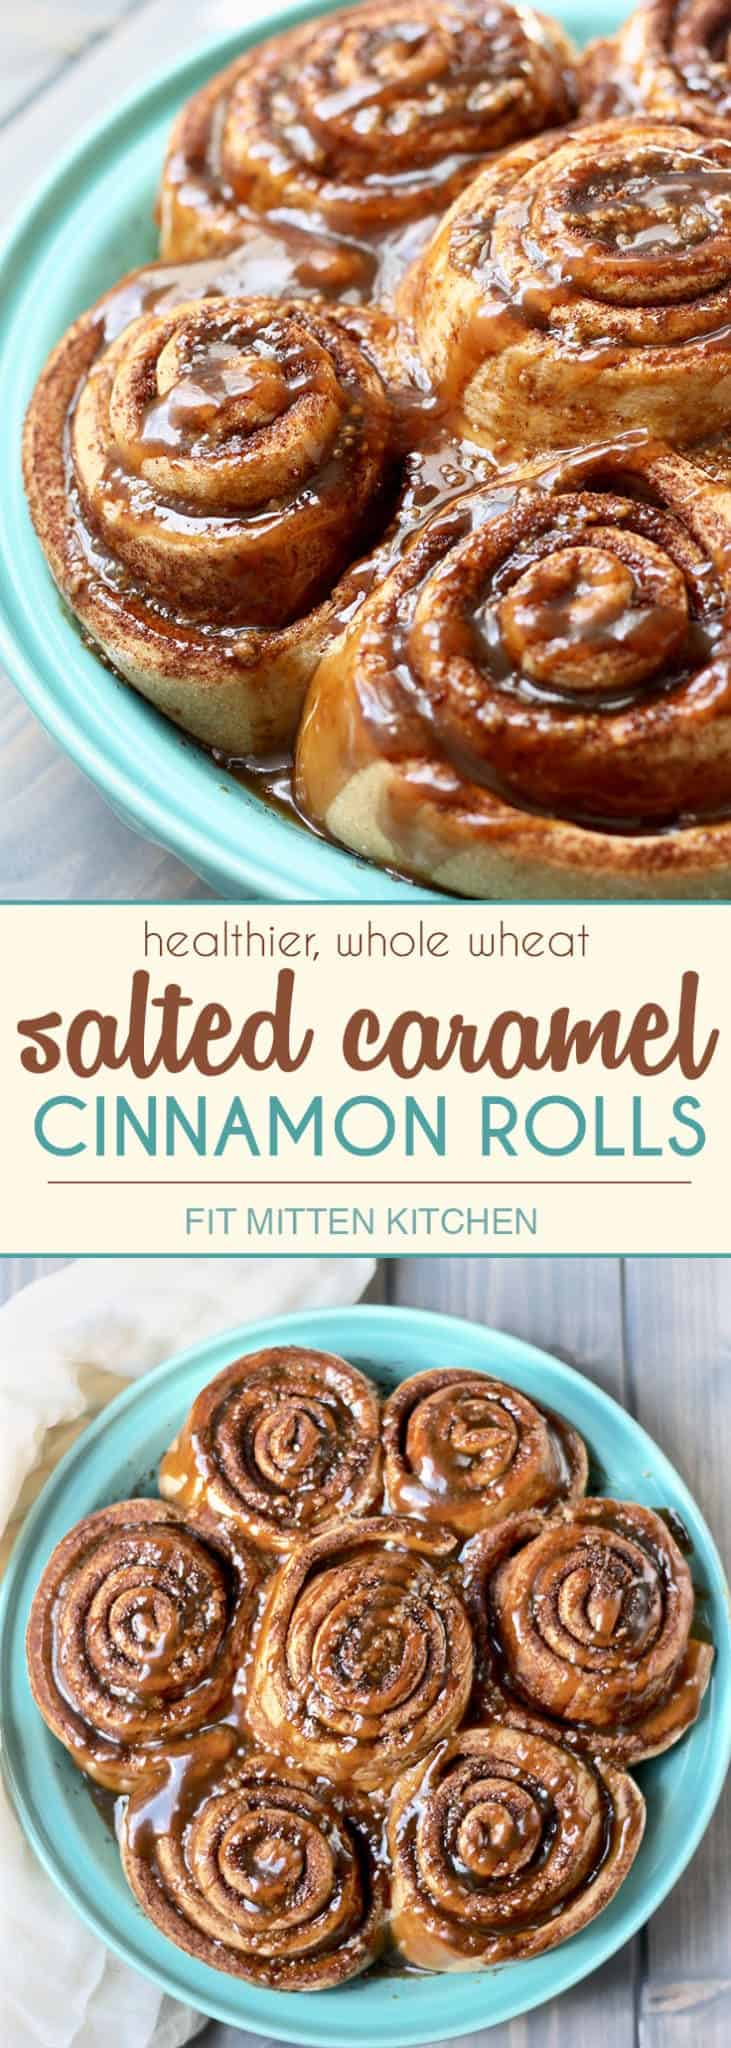 Healthier, whole wheat cinnamon rolls made with coconut sugar and coconut oil instead of butter. Then topped off with a healthier salted caramel glaze!